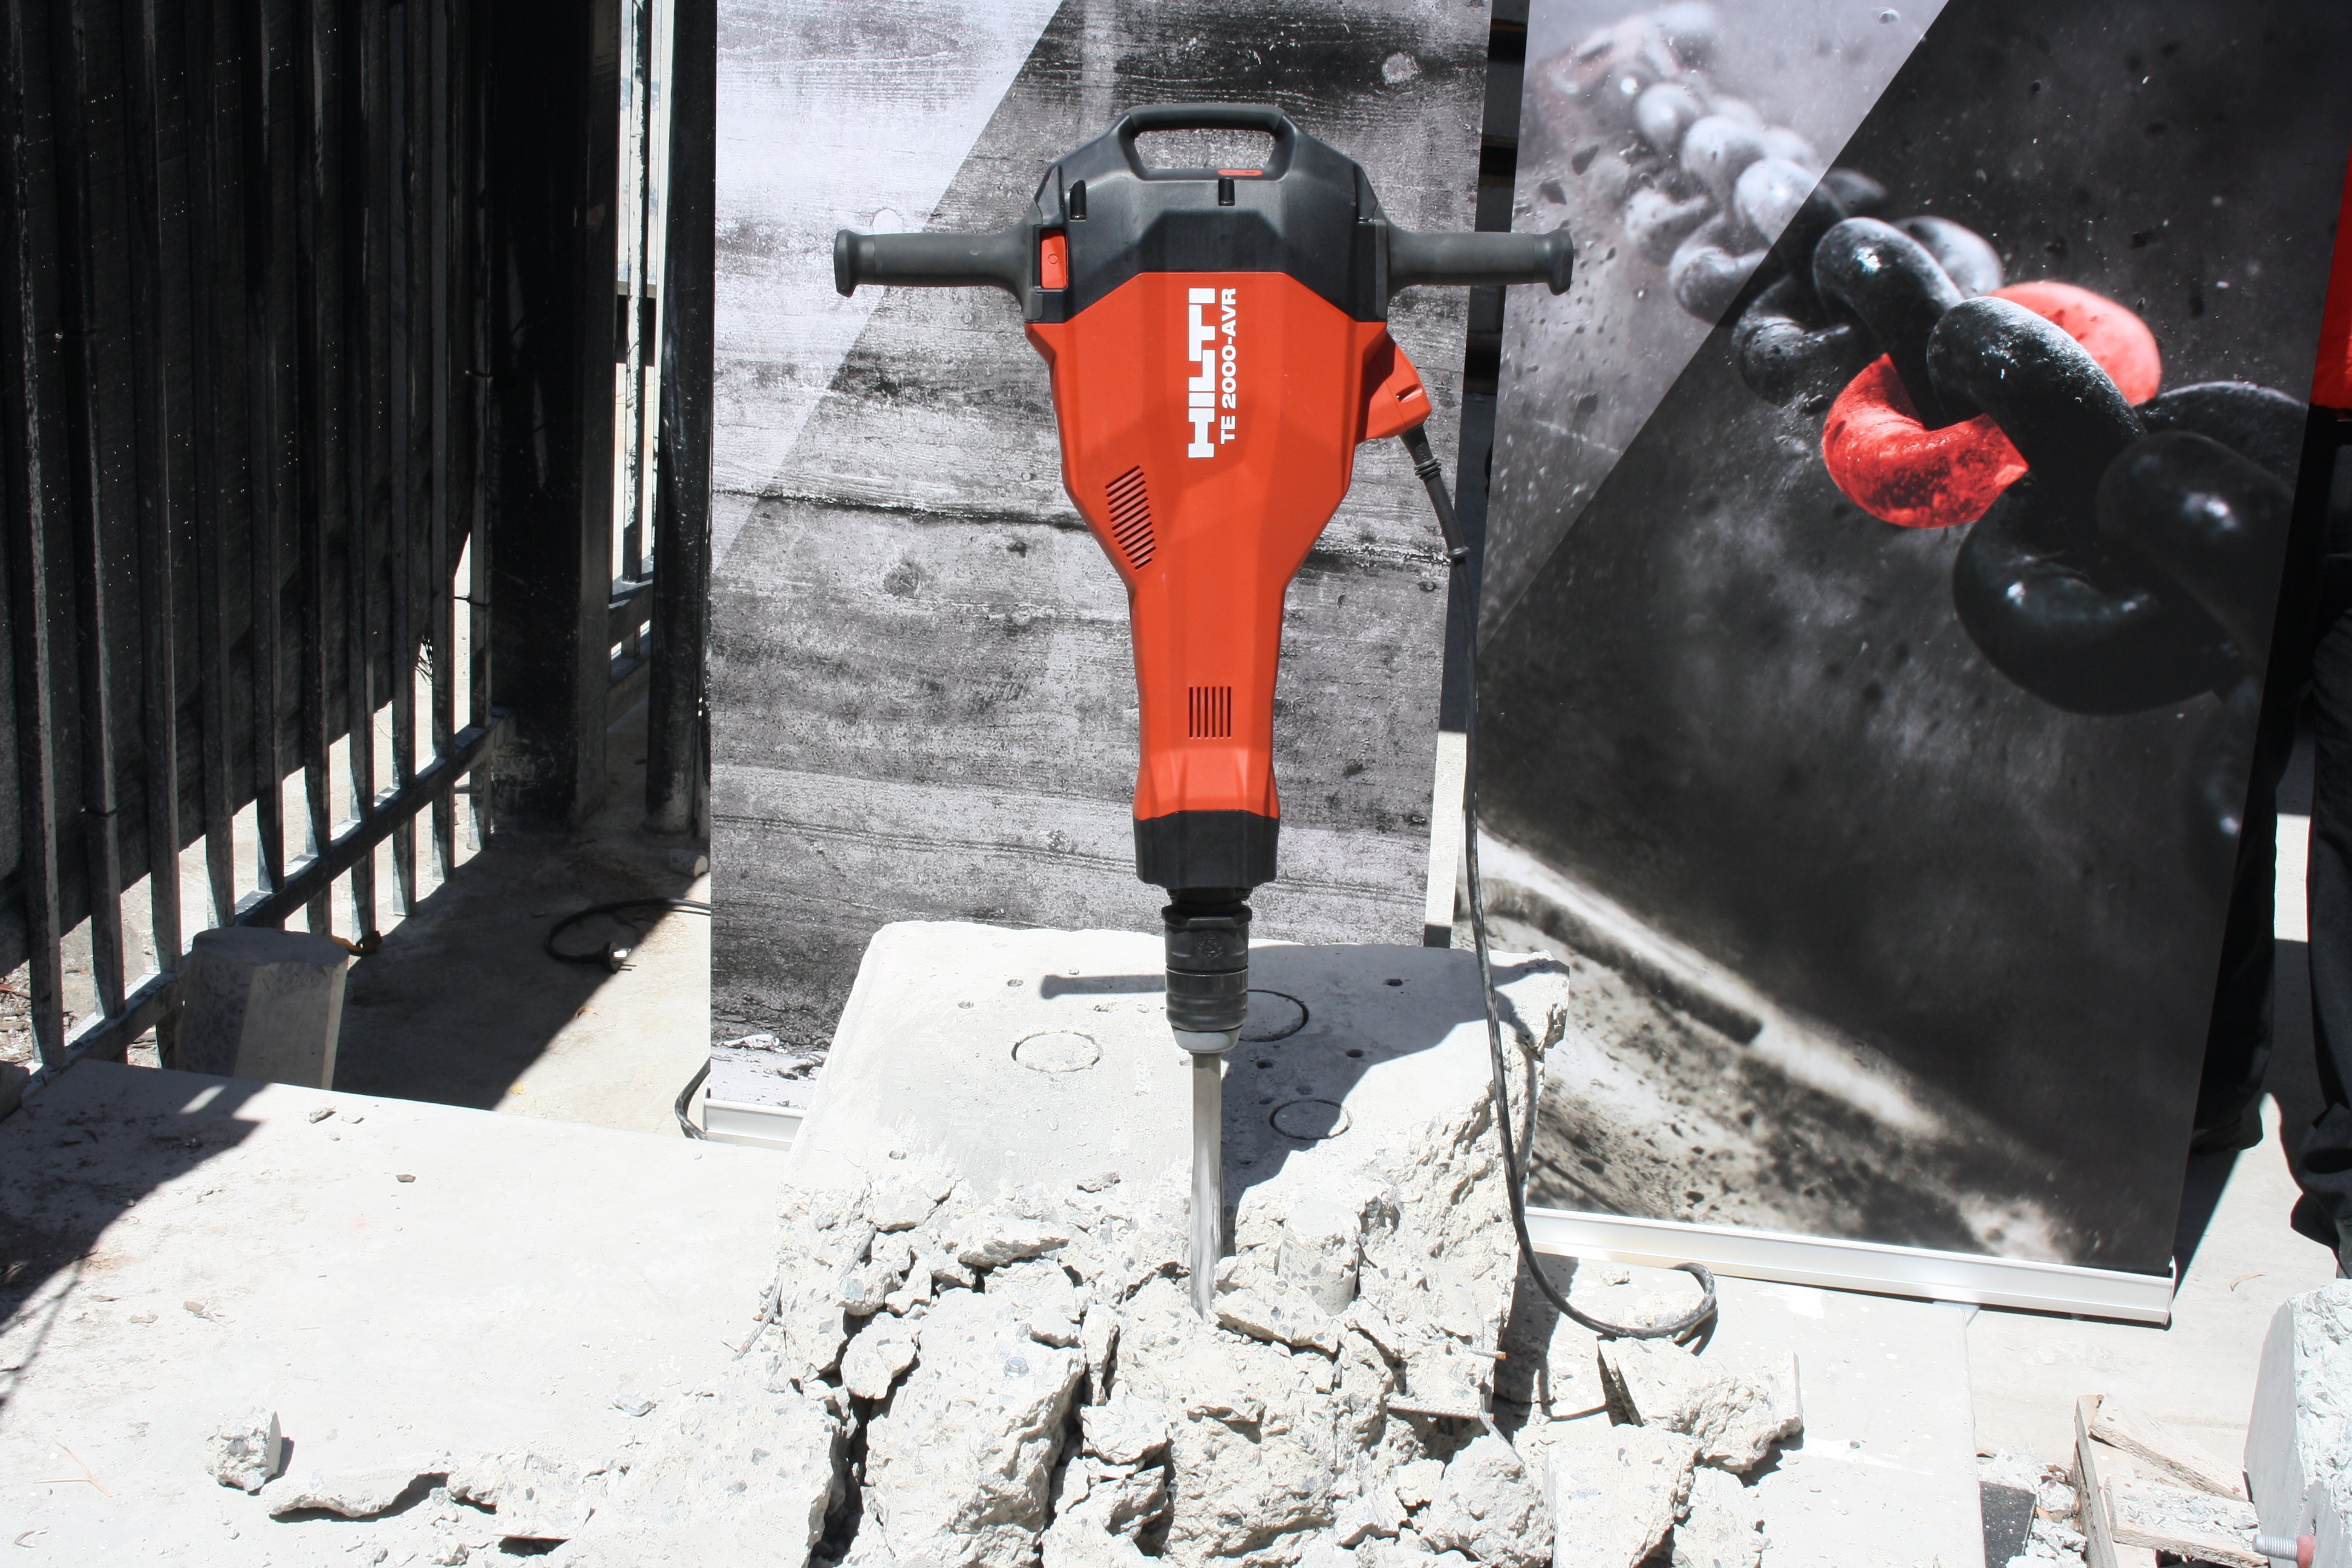 Kennards Hire makes demolitions easy with the new Hilti TE 2000